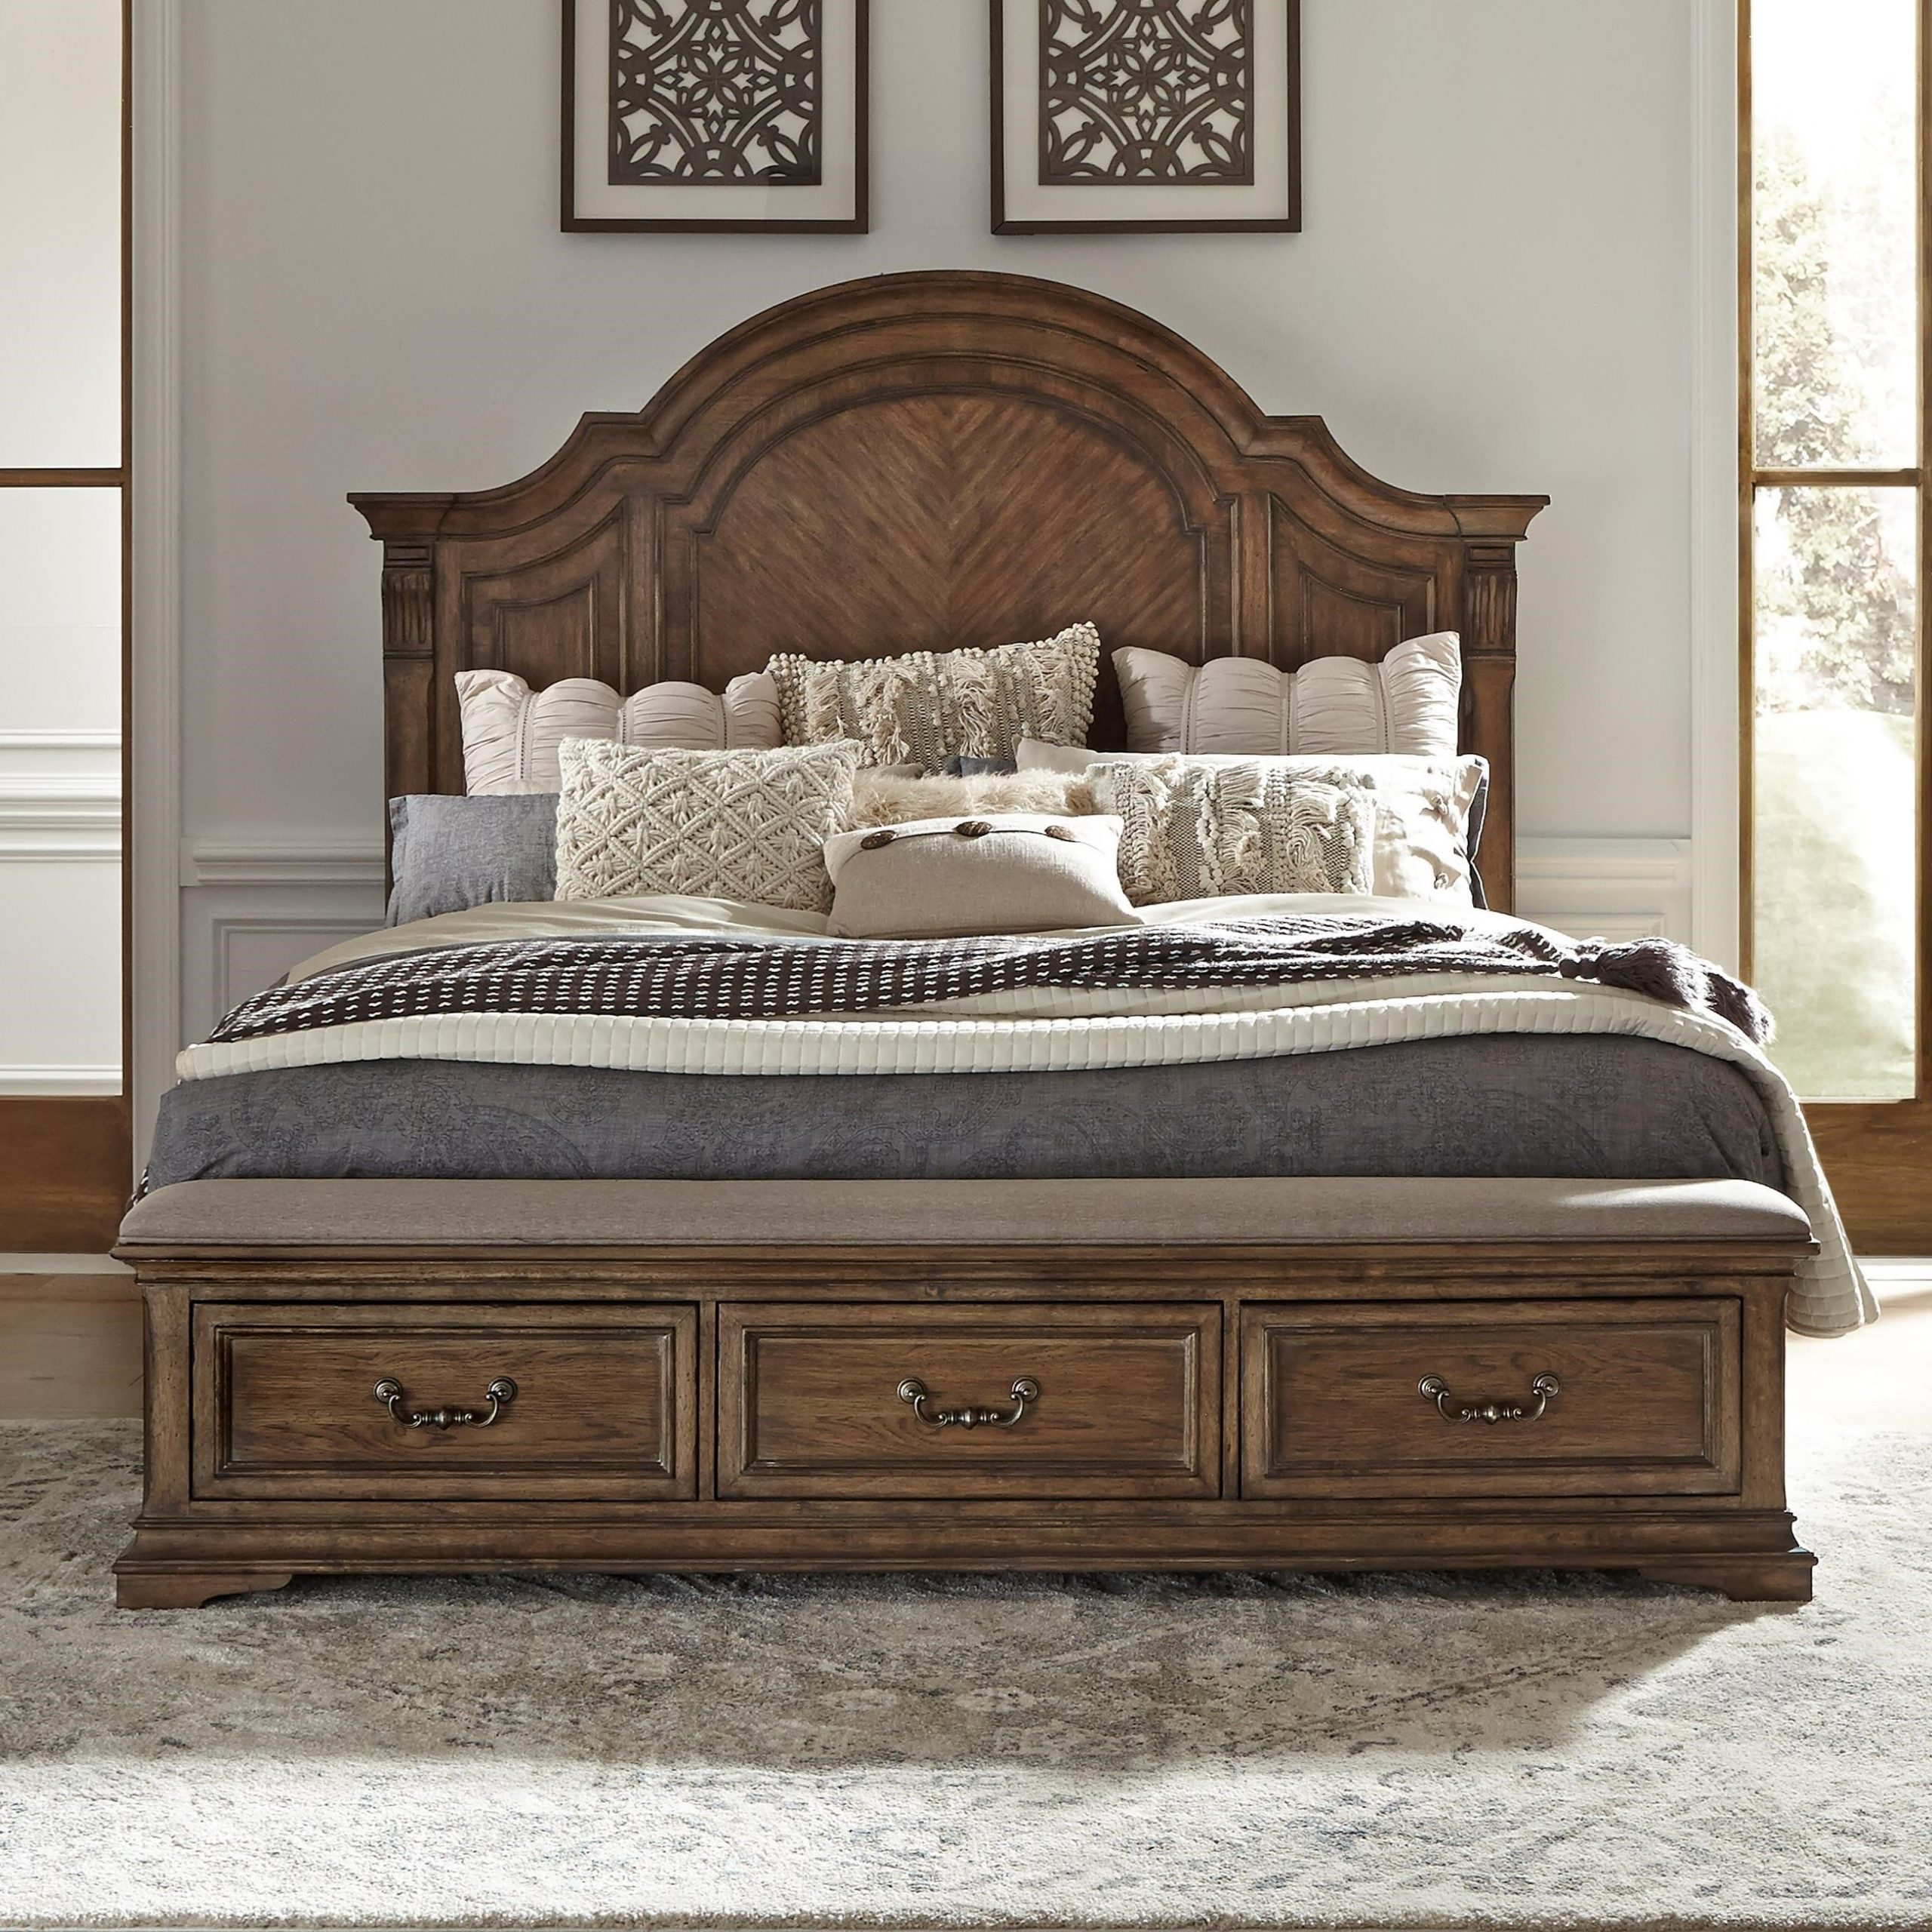 Well Liked Liberty Furniture Haven Hall Traditional Queen Storage Bed Intended For Liberty Sectional Futon Sofas With Storage (View 3 of 20)